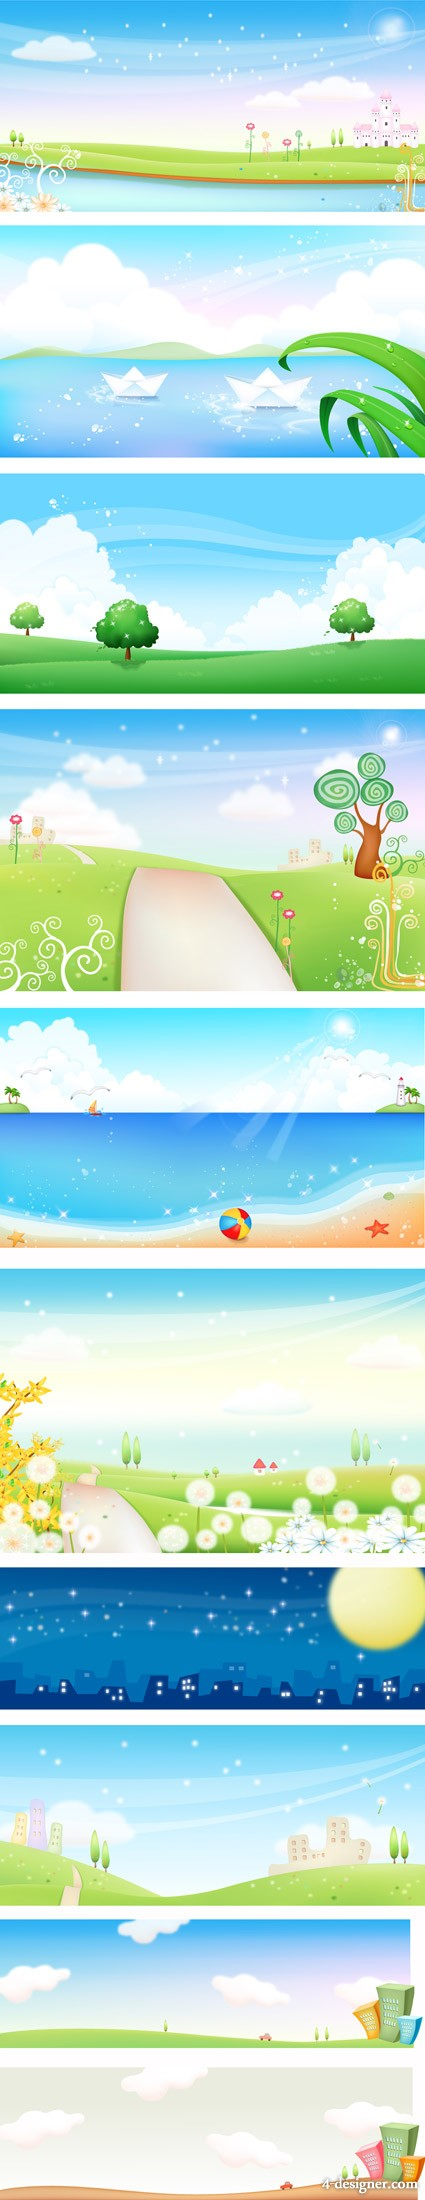 Korea vector landscape material   spring and summer scenery